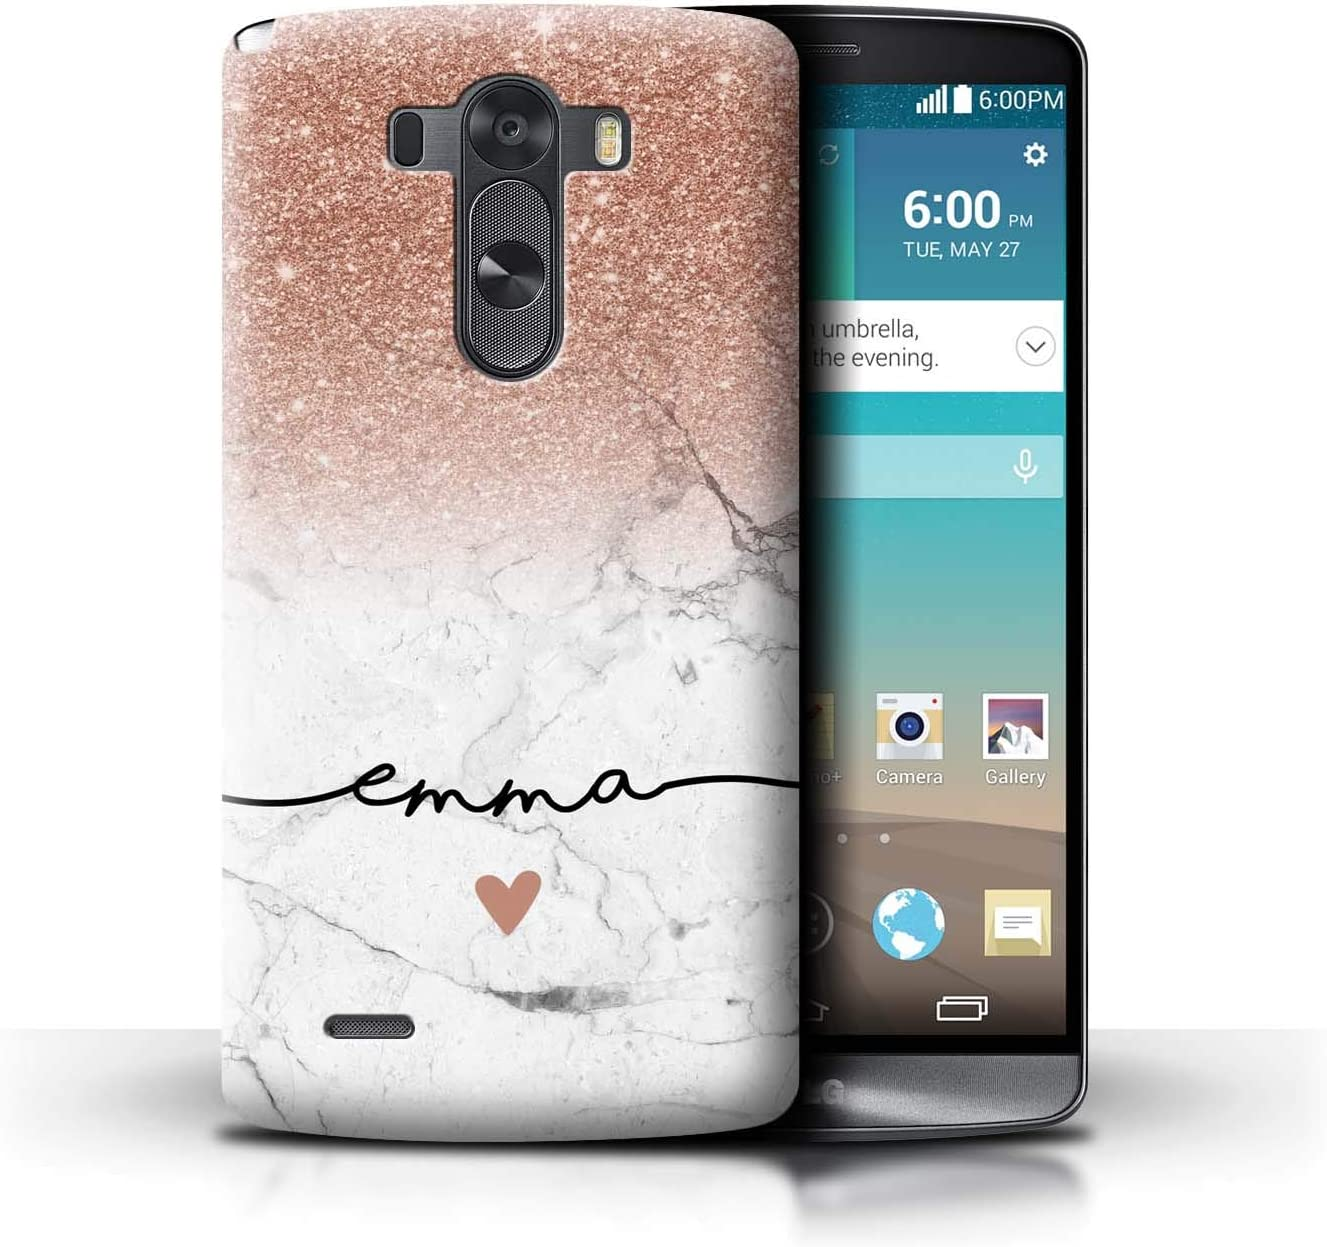 Personalized Custom Handwriting Glitter Ombre Case for LG G3/D850/D855 / Rose Gold Sparkle White Marble Design/Initial/Name/Text DIY Cover